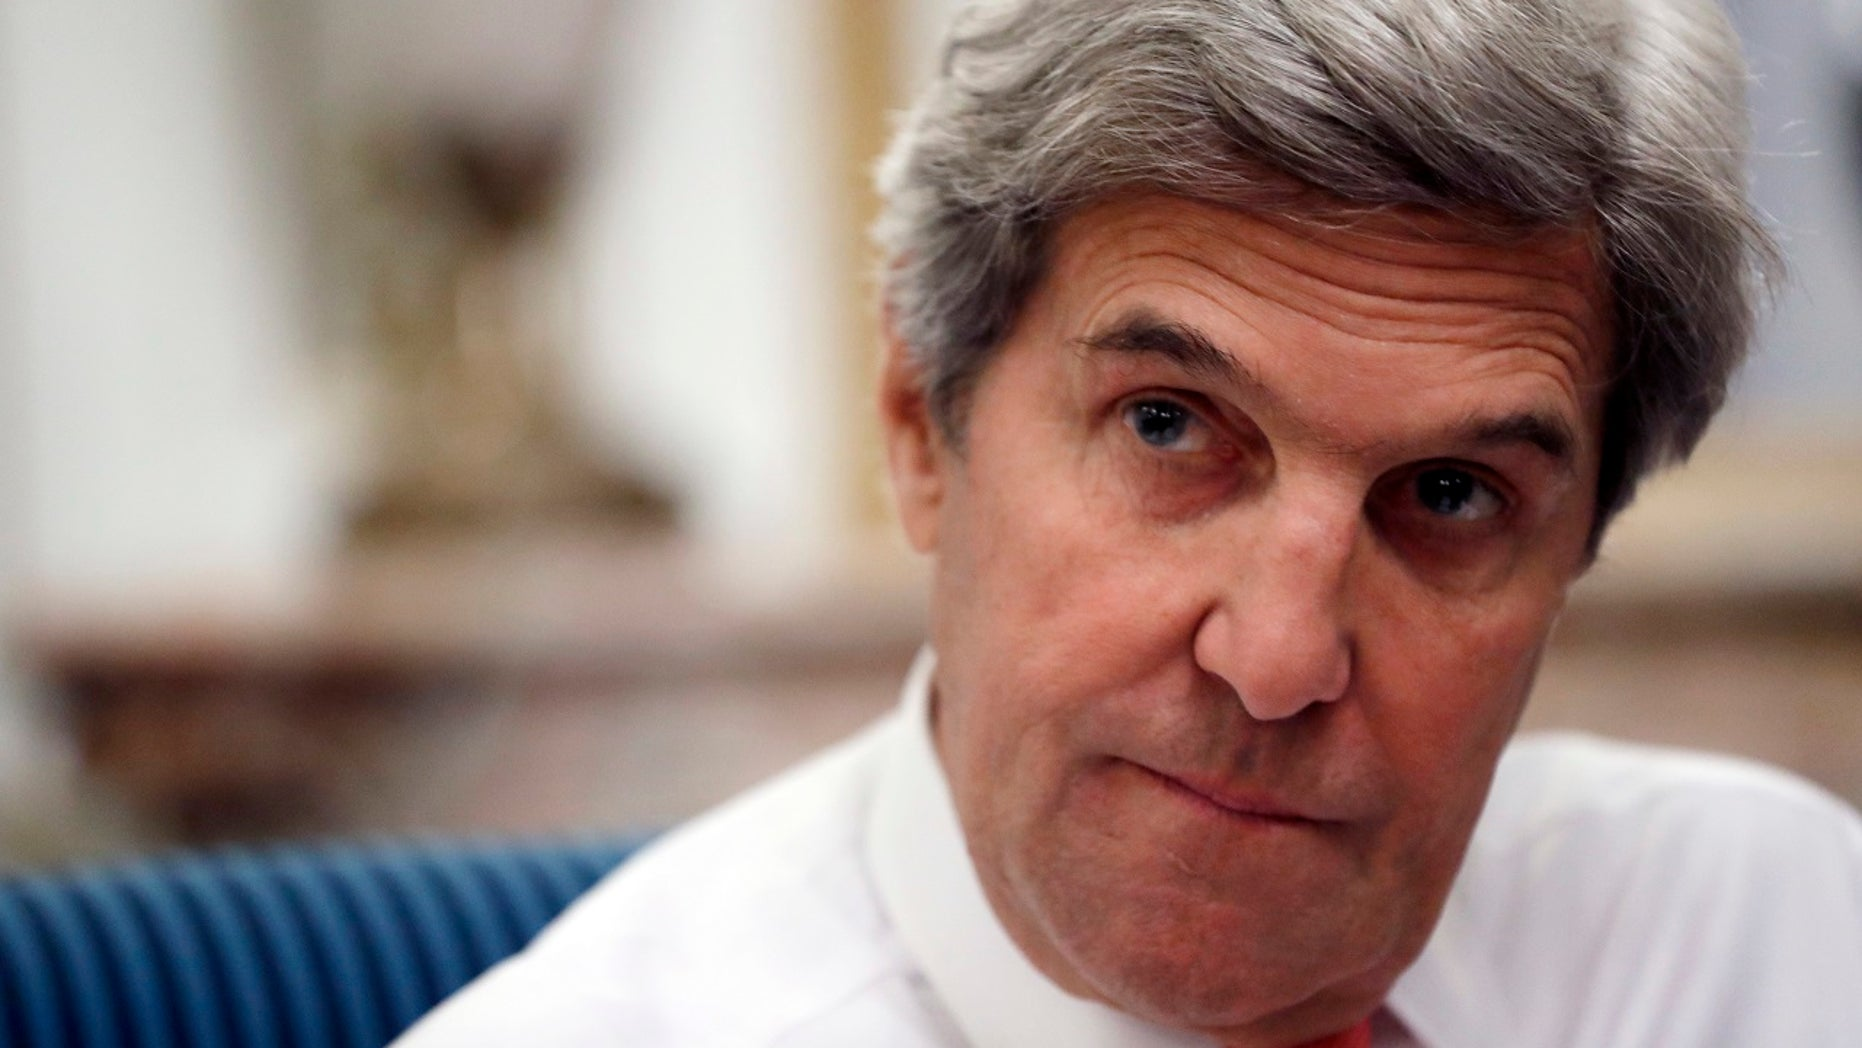 Florida Senator Marco Rubio asked the Department of Justice on Tuesday to determine whether former Secretary of State John Kerry violated federal laws by holding meetings with the Iranian foreign minister.